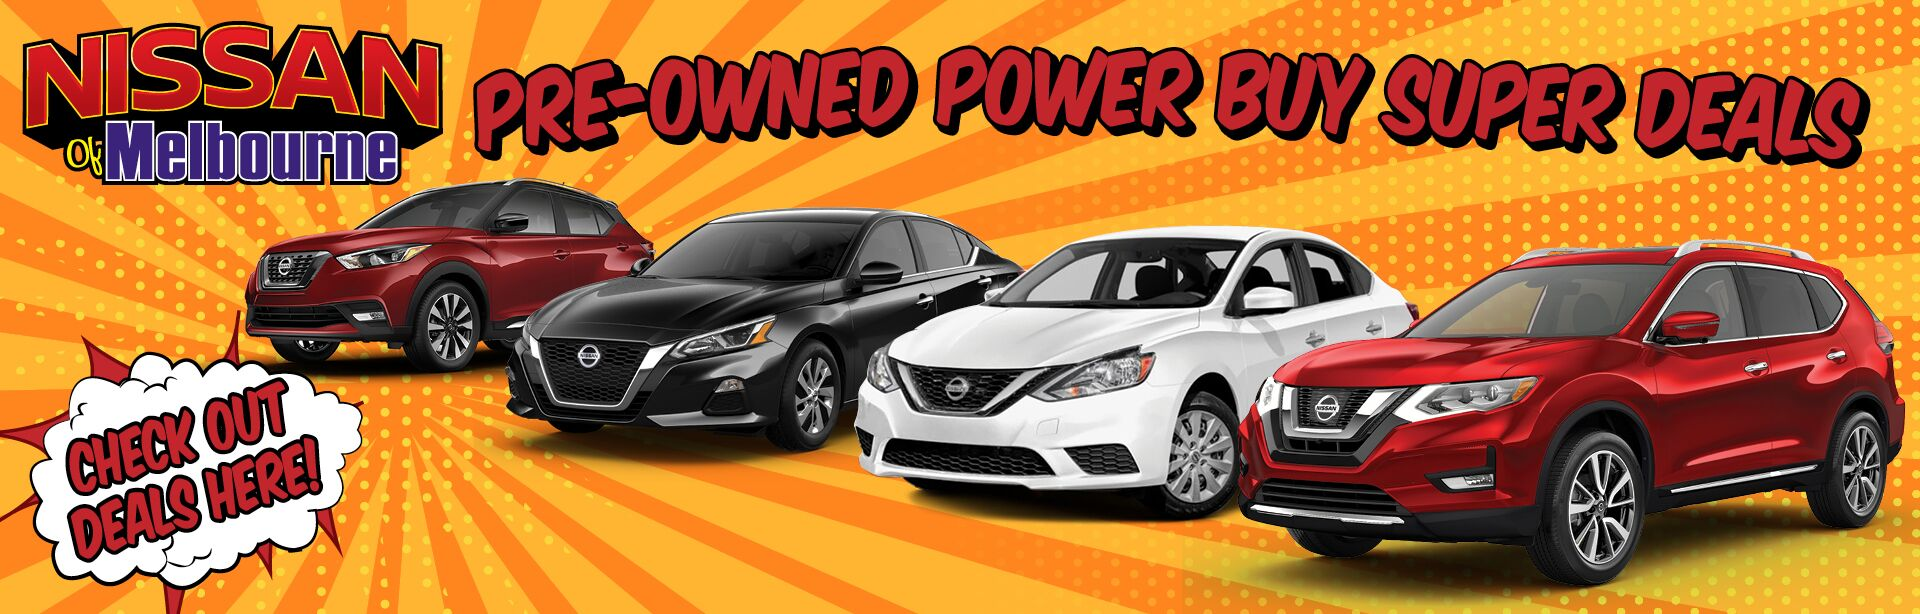 PRE-OWNED POWER BUY